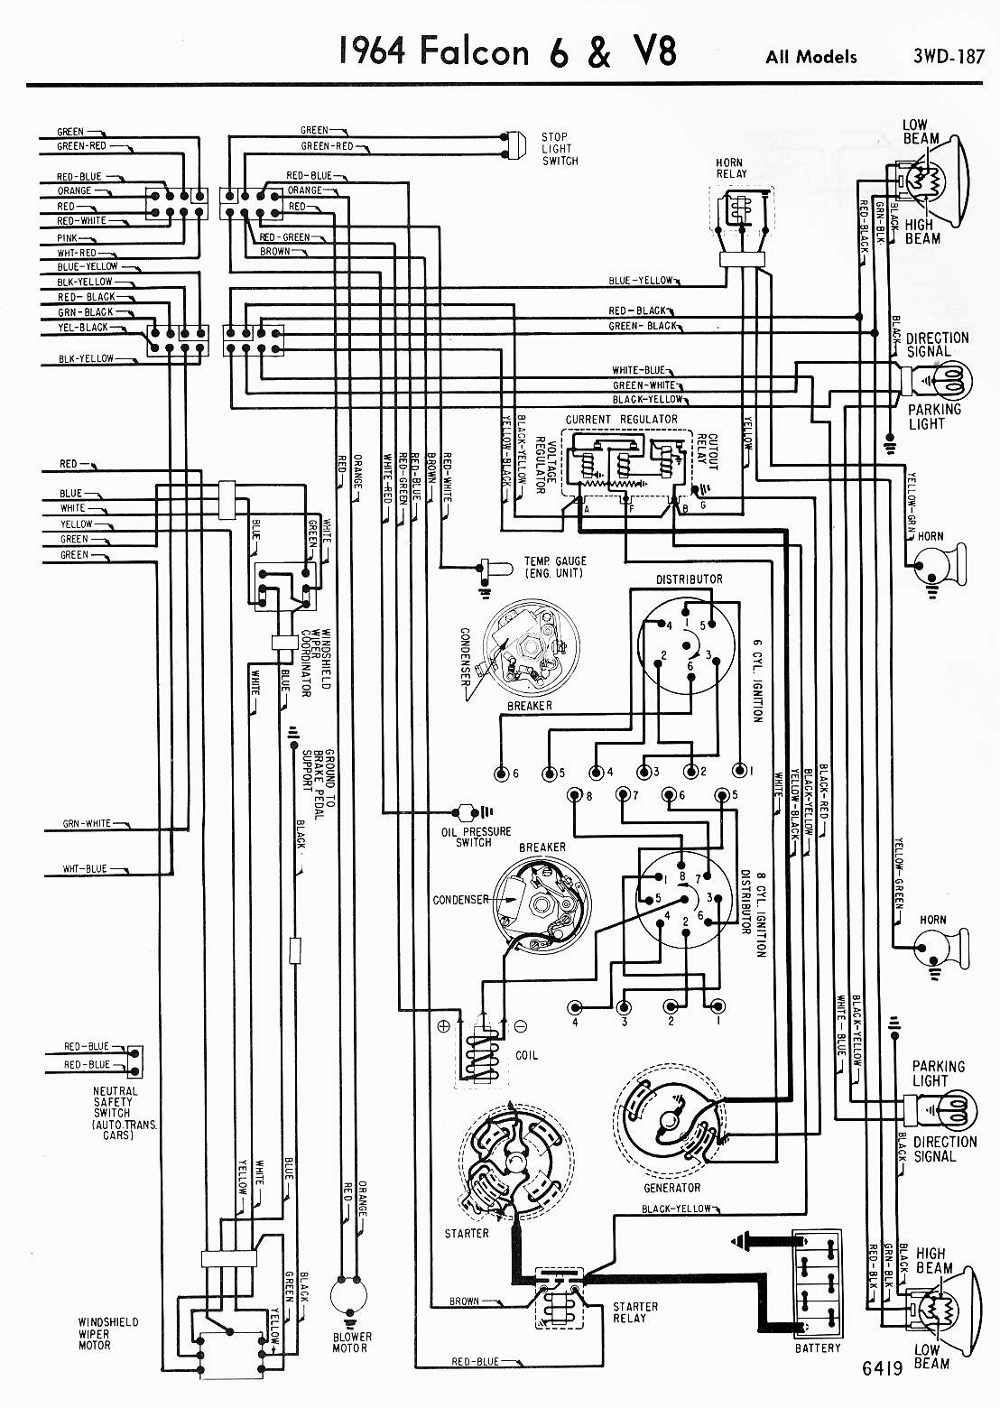 medium resolution of 1964 ford falcon wiring diagram wiring diagrams of 1964 ford 6 and v8 falcon all models part 2